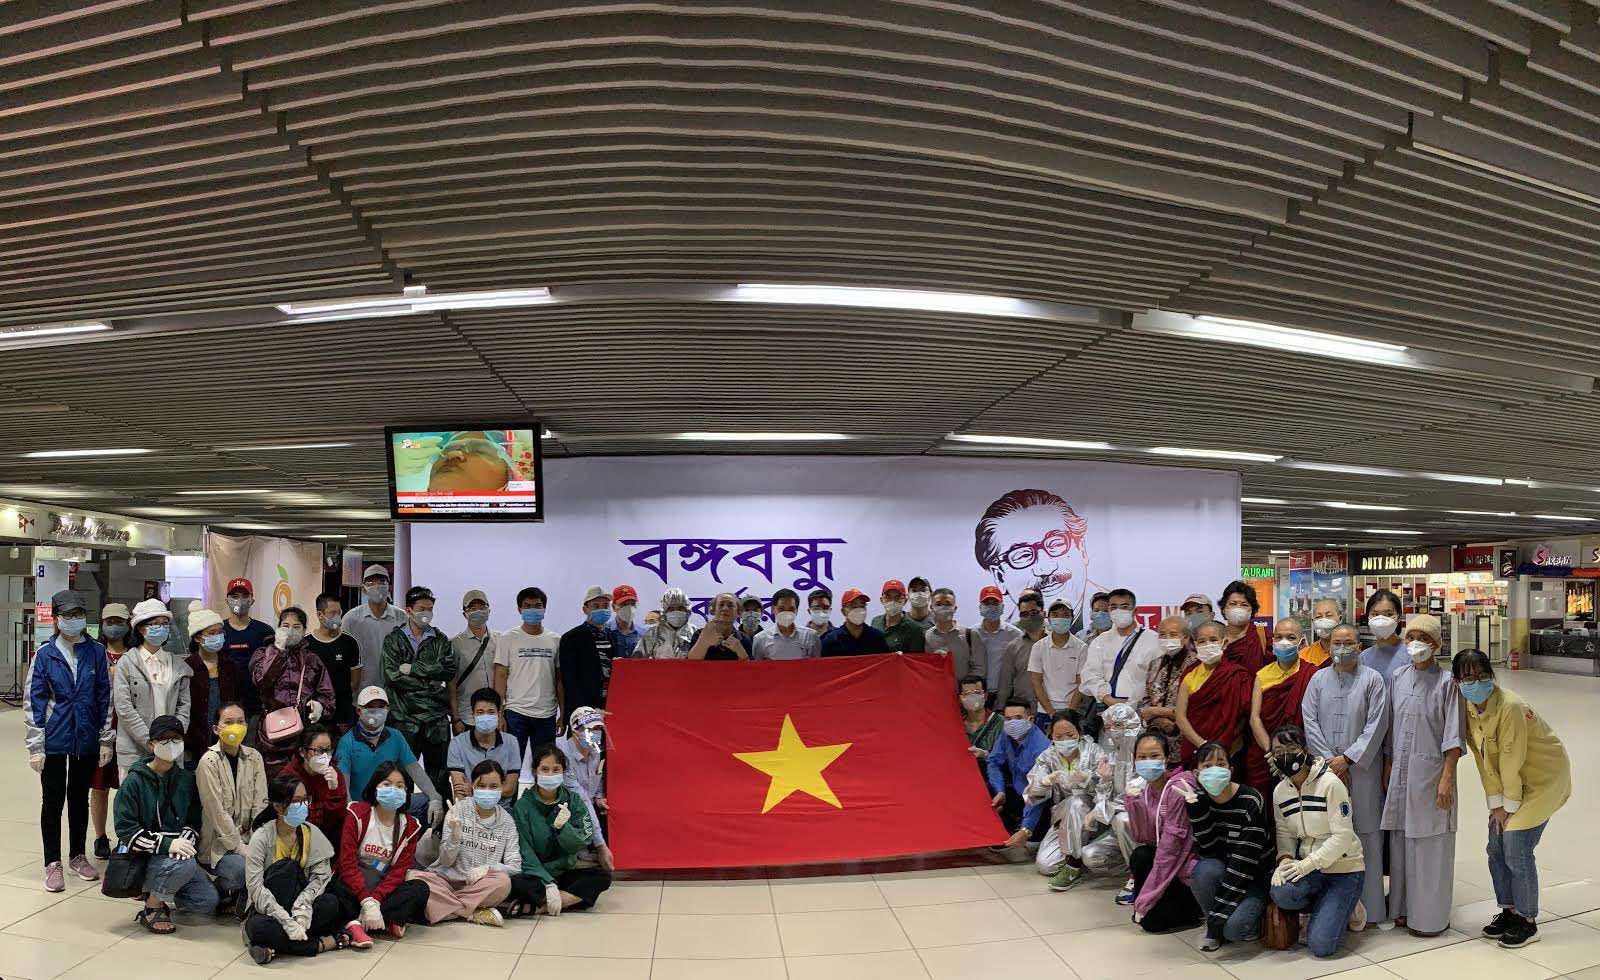 vietnam obtains golden opportunities with notable success in covid 19 fight